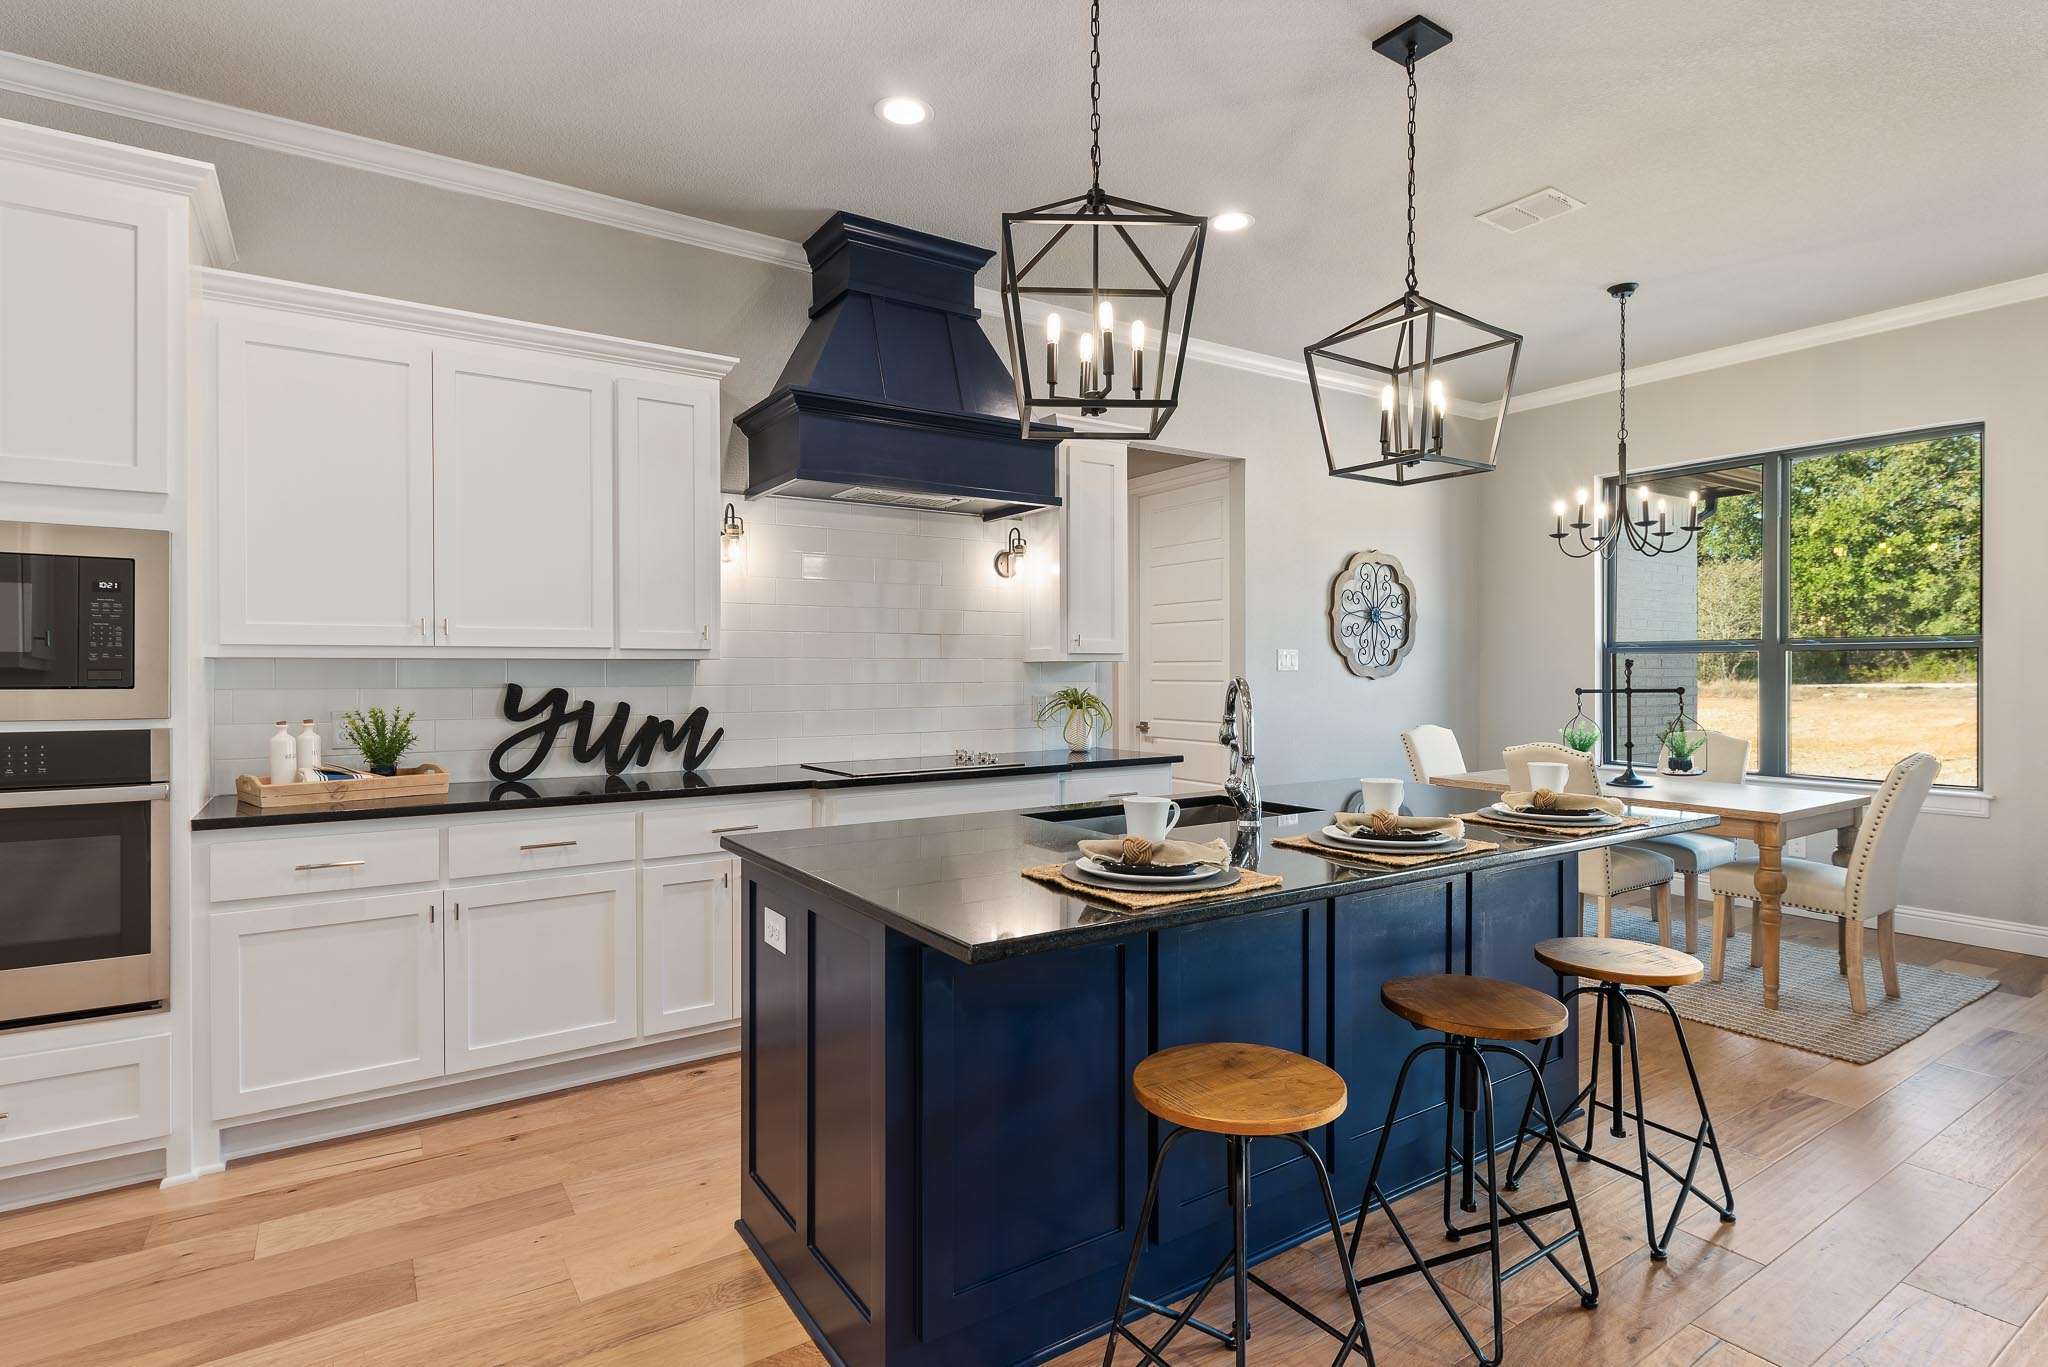 Farmstyle kitchen with blue island